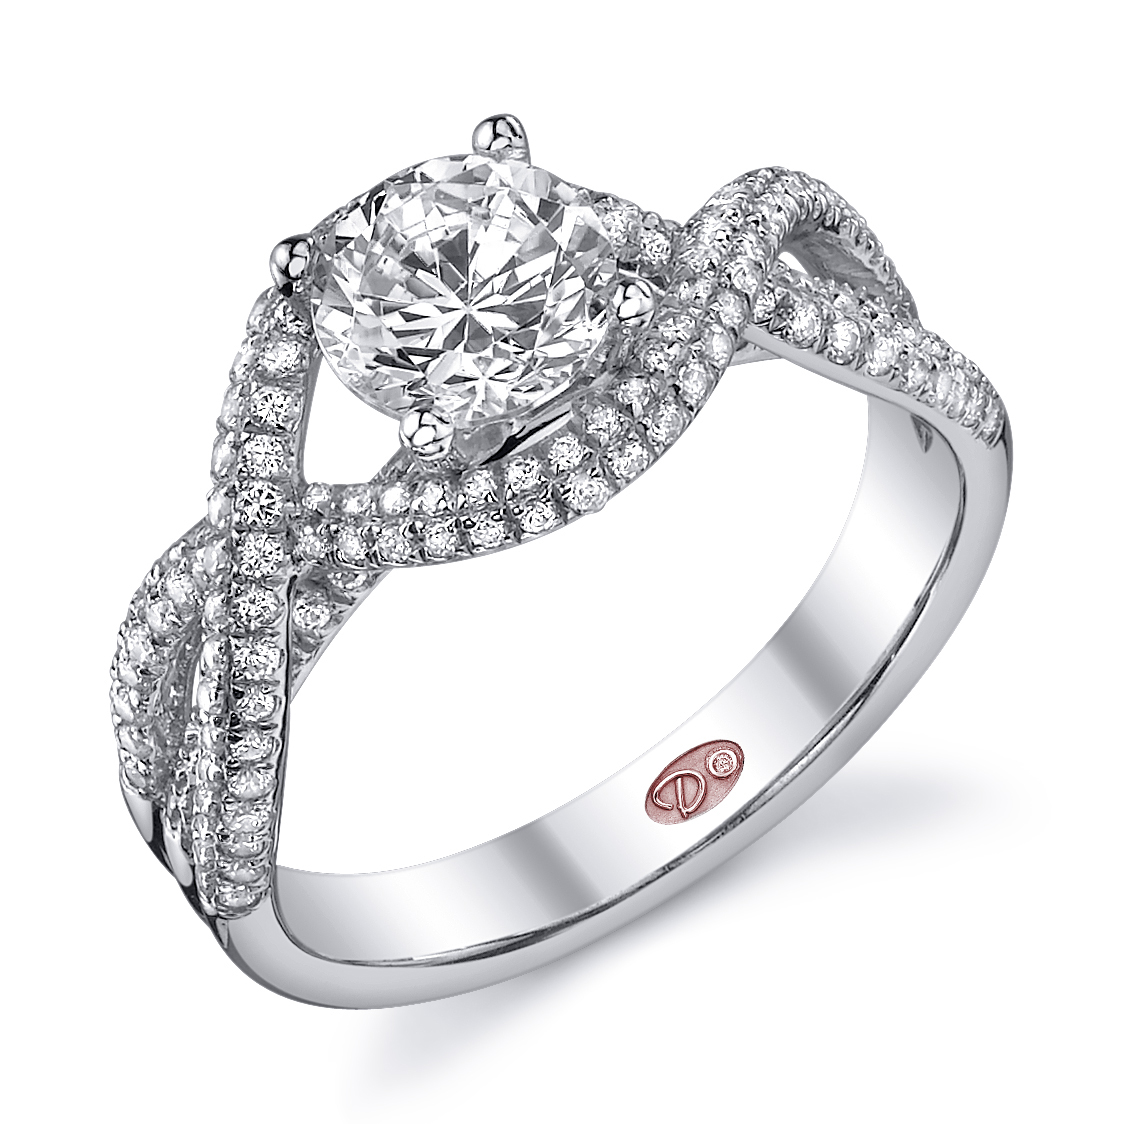 Demarco diamond engagement rings in Austin, Texas